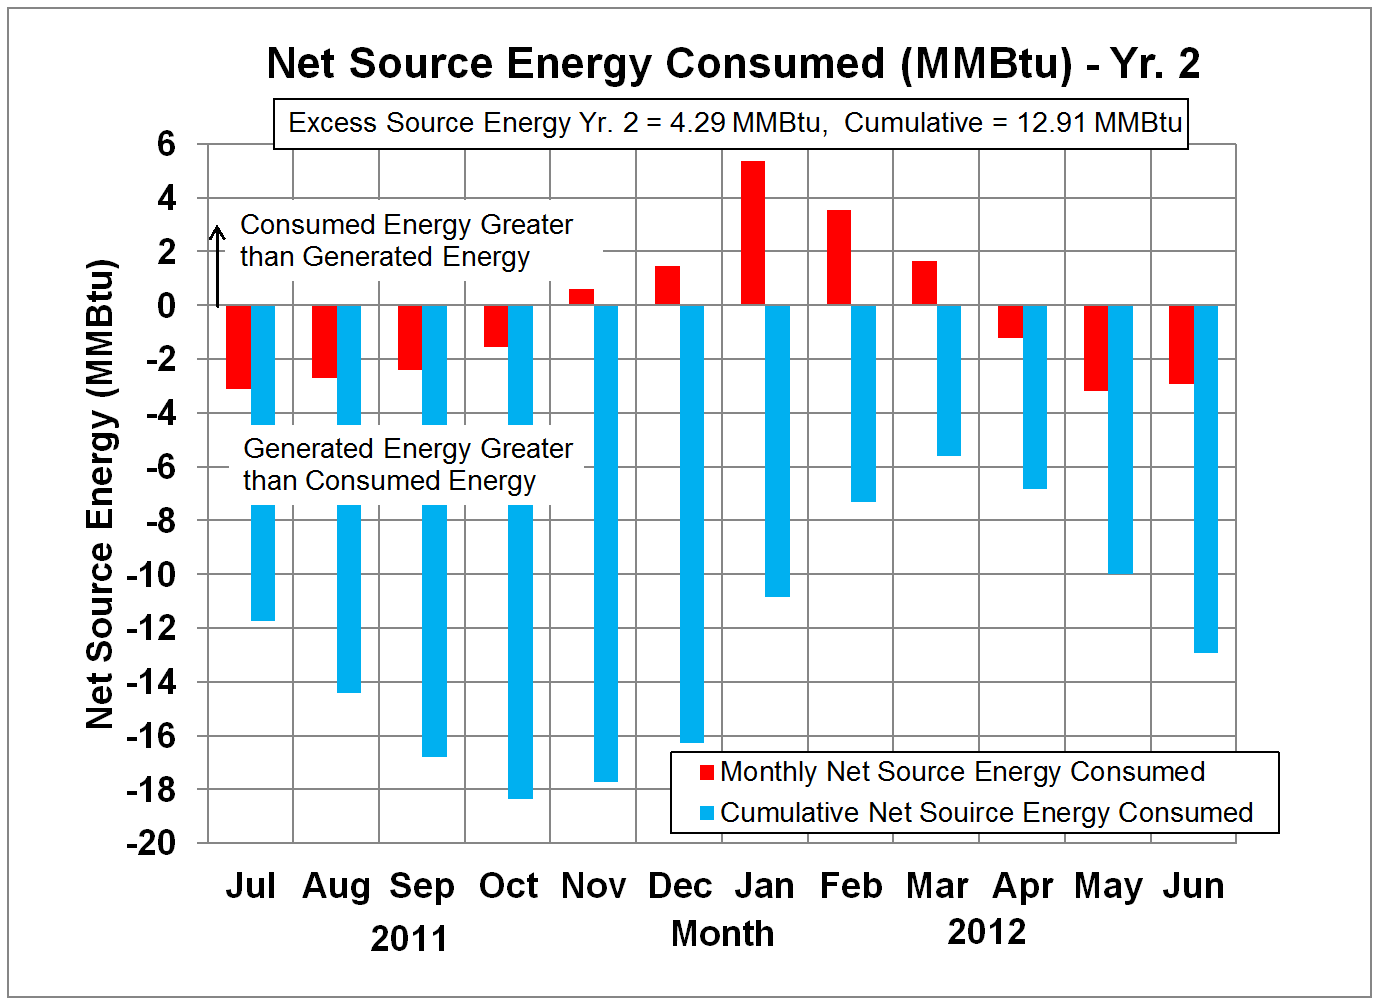 Net Source Energy in Million Btu's - Yr. 2